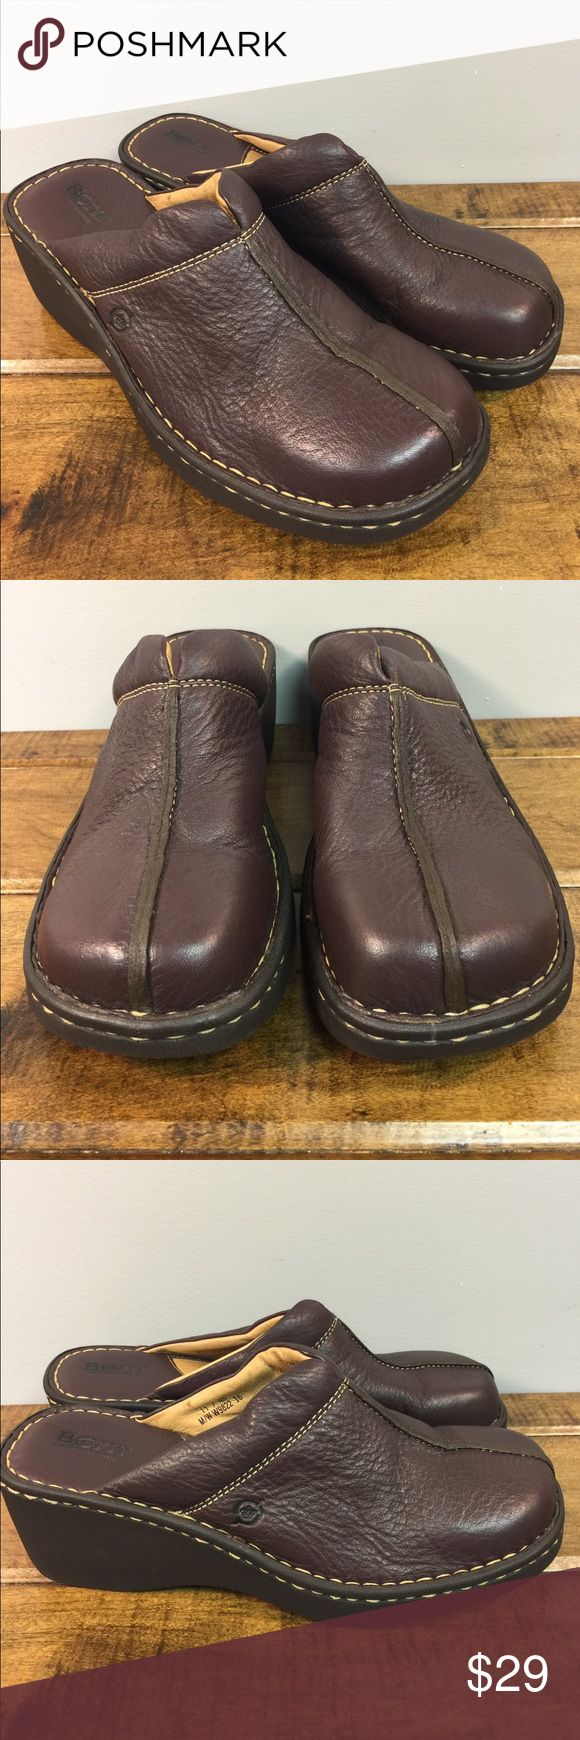 """Born 11M brown leather mules clogs casual shoes Born USA 11 medium brown leather slip on clogs are accented by tan top stitching.  2.5"""" heel. Light wear. No bad smells. Born Shoes Mules & Clogs"""